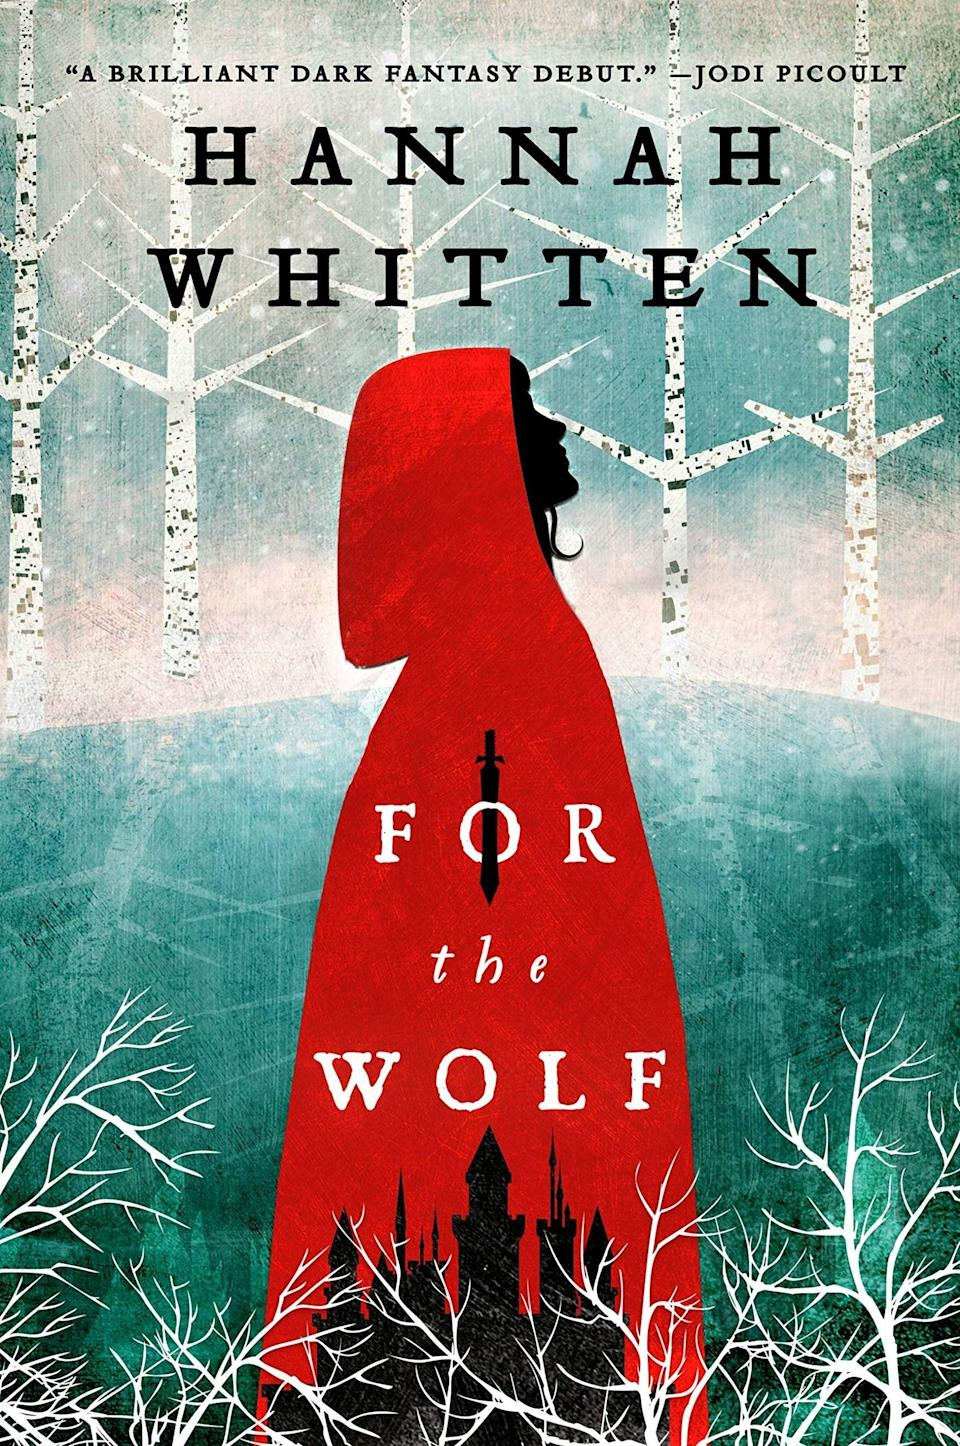 """While the title of this novel might feel a bit on the nose, trust us when we say this story goes far beyond the origins of <em>Little Red Riding Hood.</em> As the second-born daughter in her kingdom, Red has spent her entire life knowing she would be sacrificed to the wolf in the woods. While the firstborn daughter adopts the throne, the second must face a gruesome fate in order to bring back the spirit of an ancient god. Living with concealed powers that she can't control, Red believes that sacrificing herself is the right thing to do. But when she finds out the local wolf is in fact a human man, it's up to her to learn how to use her magic and take control of her own life.<br><br><strong>Hannah Whitten</strong> For the Wolf, $, available at <a href=""""https://uk.bookshop.org/books/for-the-wolf/9780356516363"""" rel=""""nofollow noopener"""" target=""""_blank"""" data-ylk=""""slk:bookshop.org"""" class=""""link rapid-noclick-resp"""">bookshop.org</a>"""